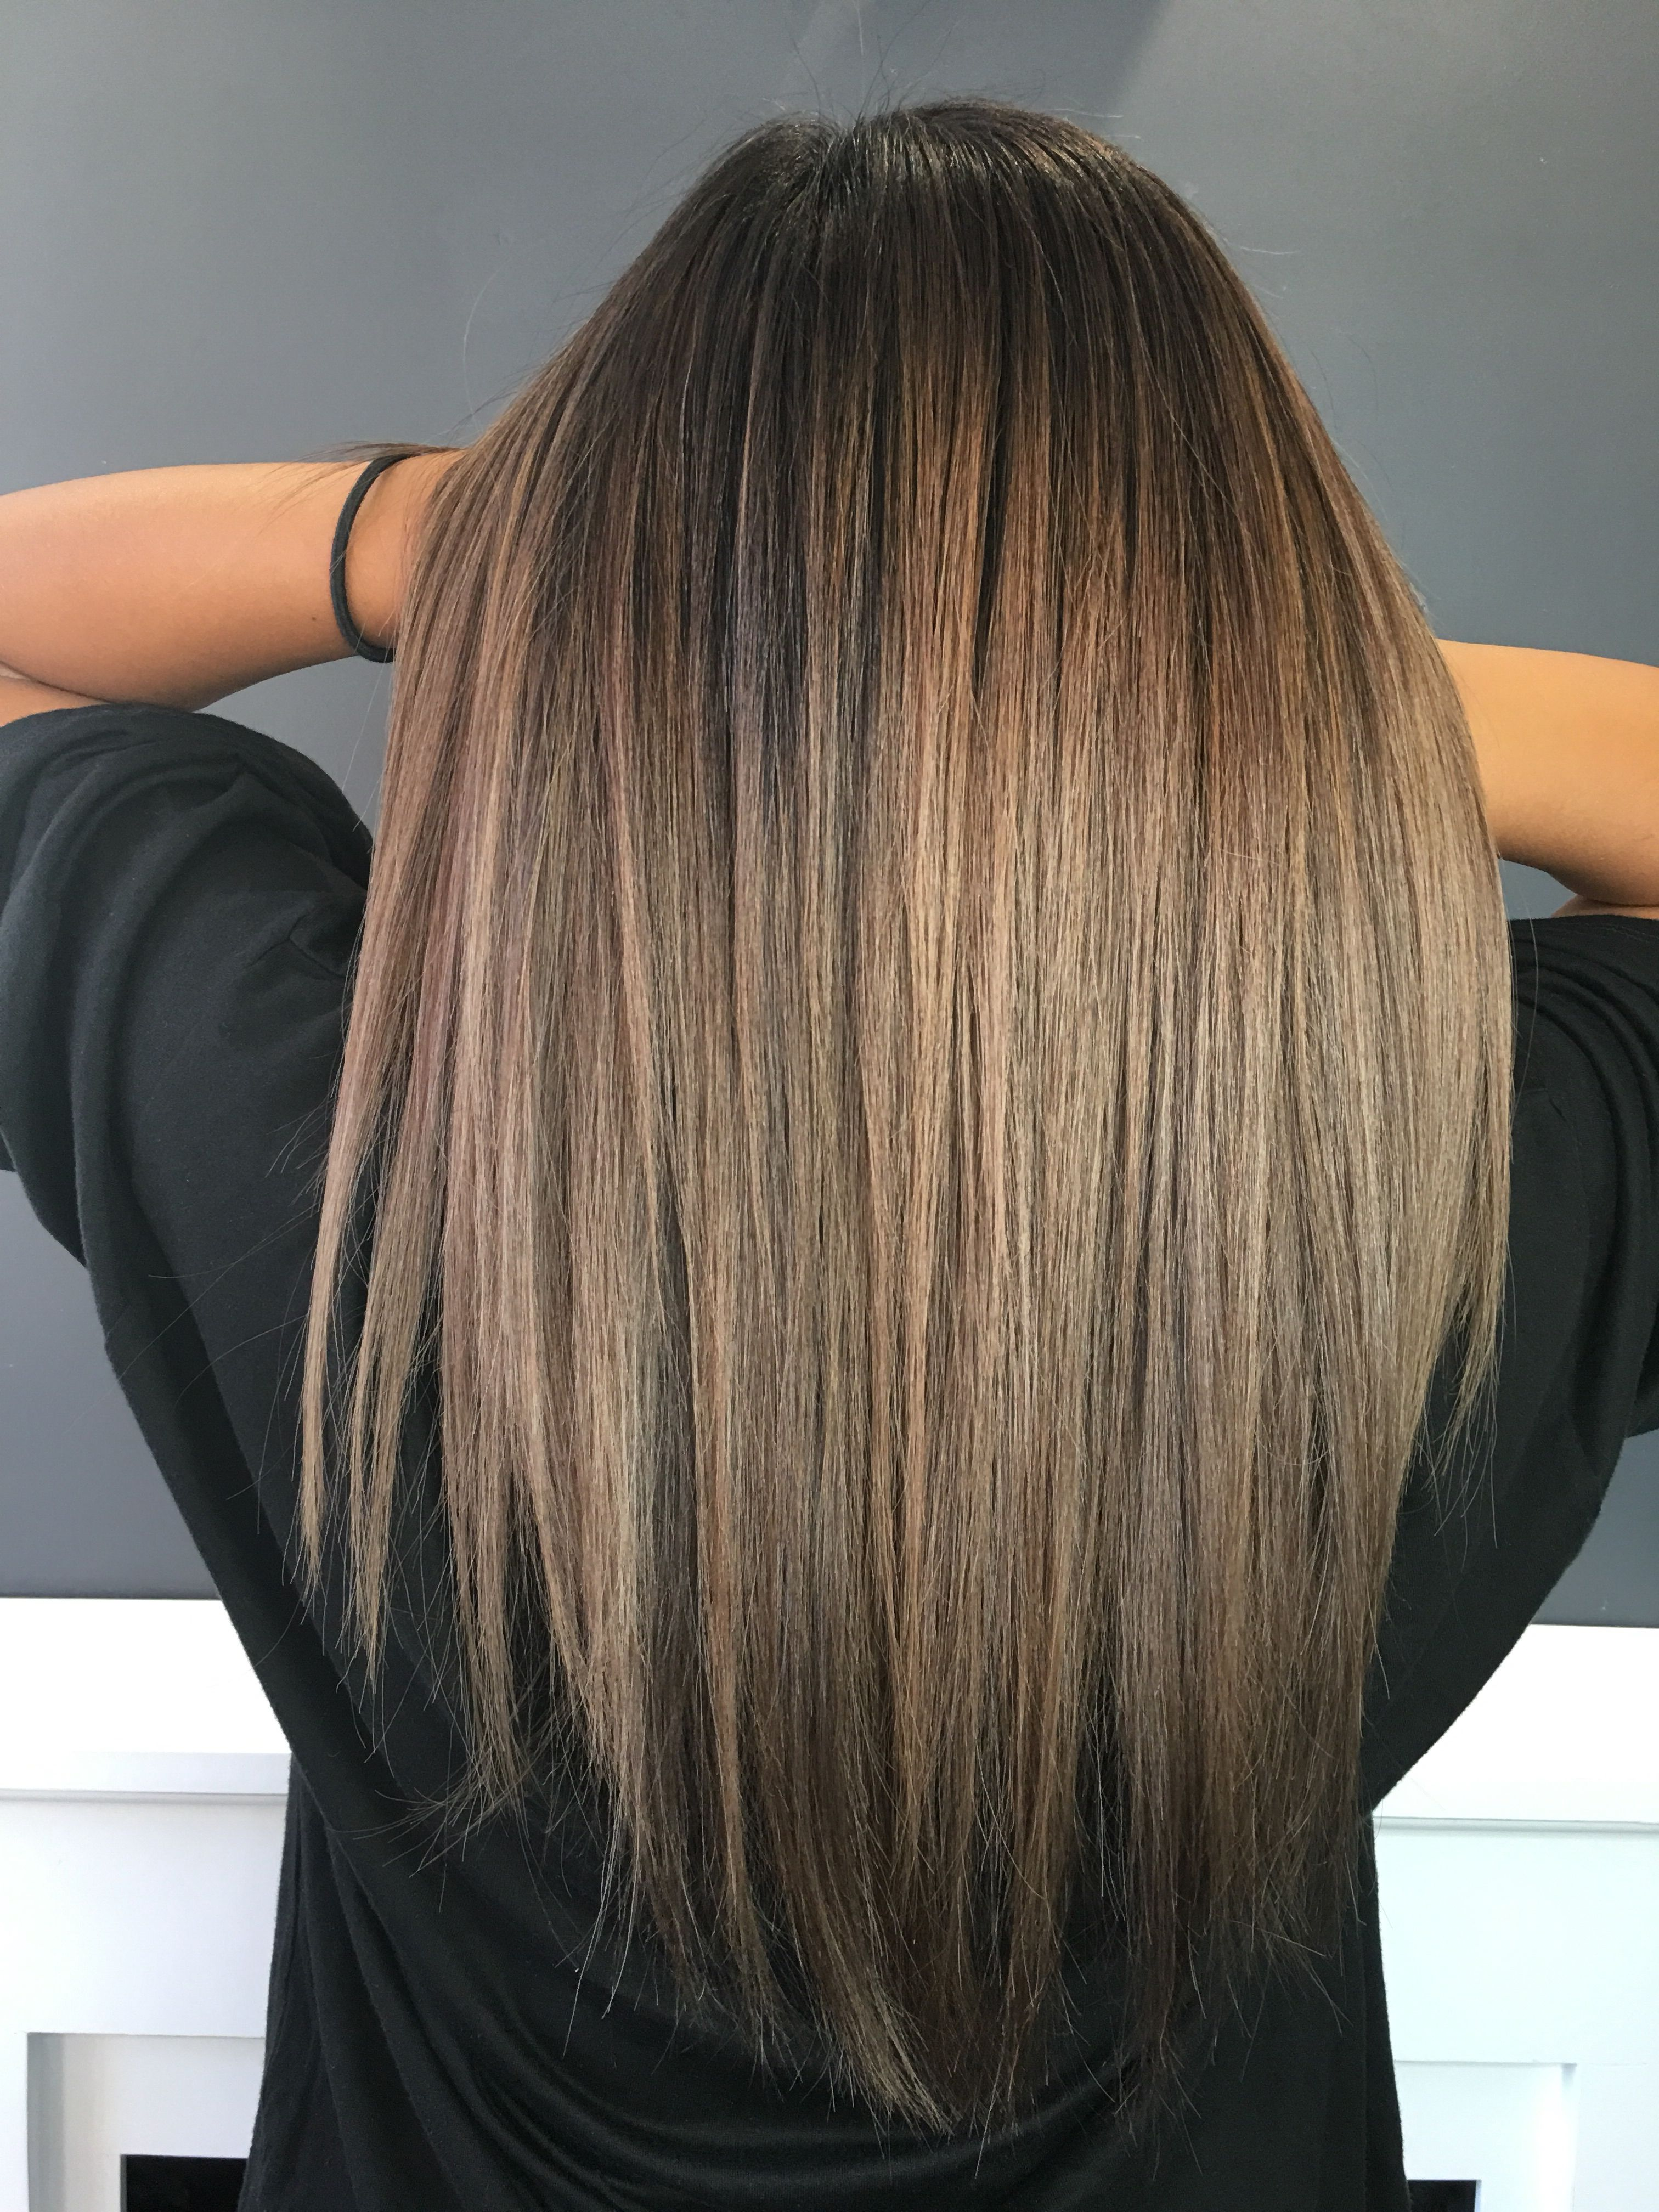 Ombre hair #brownhaircolors